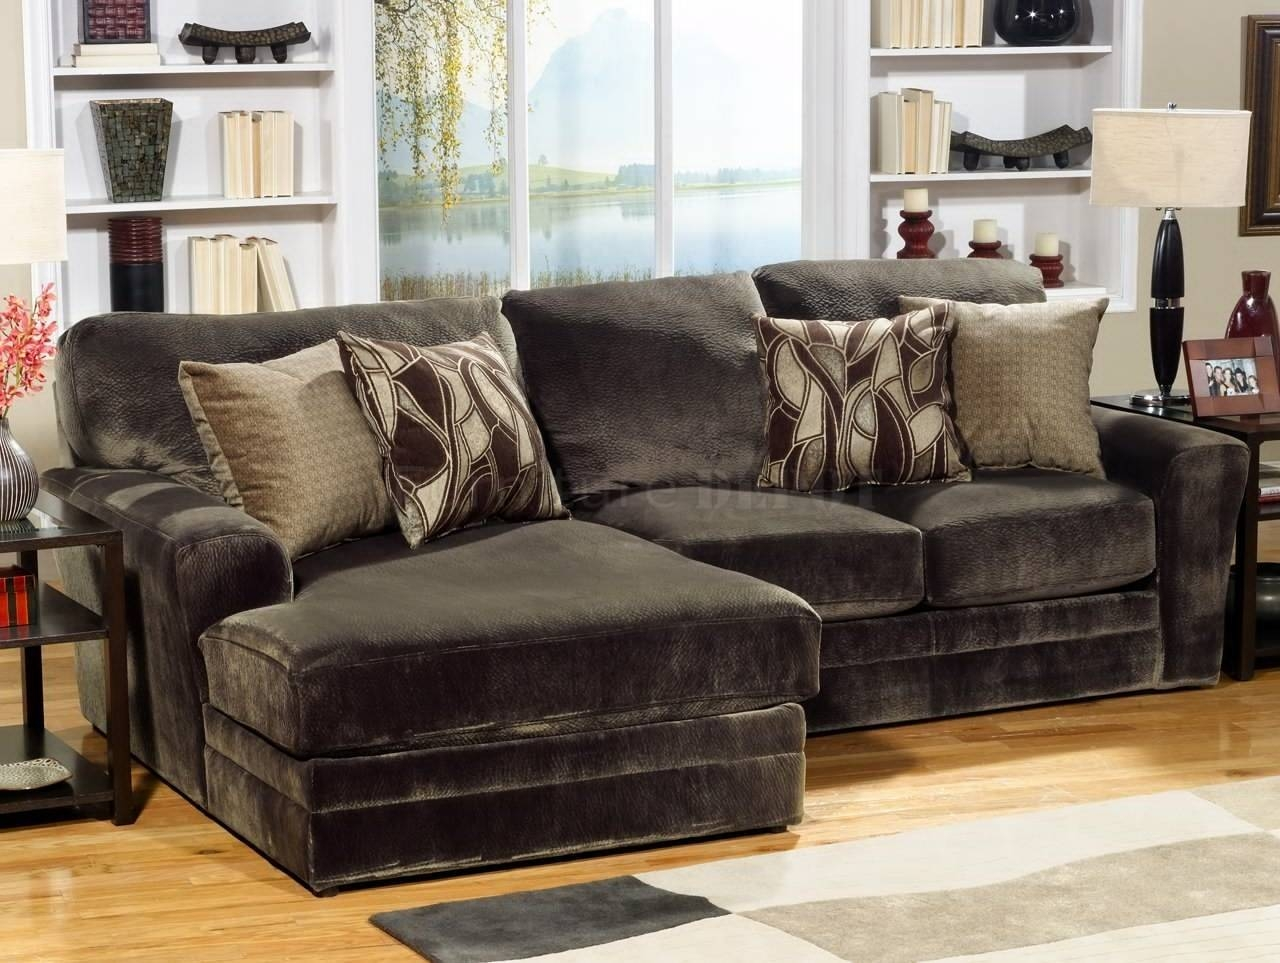 12 Collection Of Chenille Sectional Sofas throughout Chenille Sectional Sofas (Image 1 of 30)